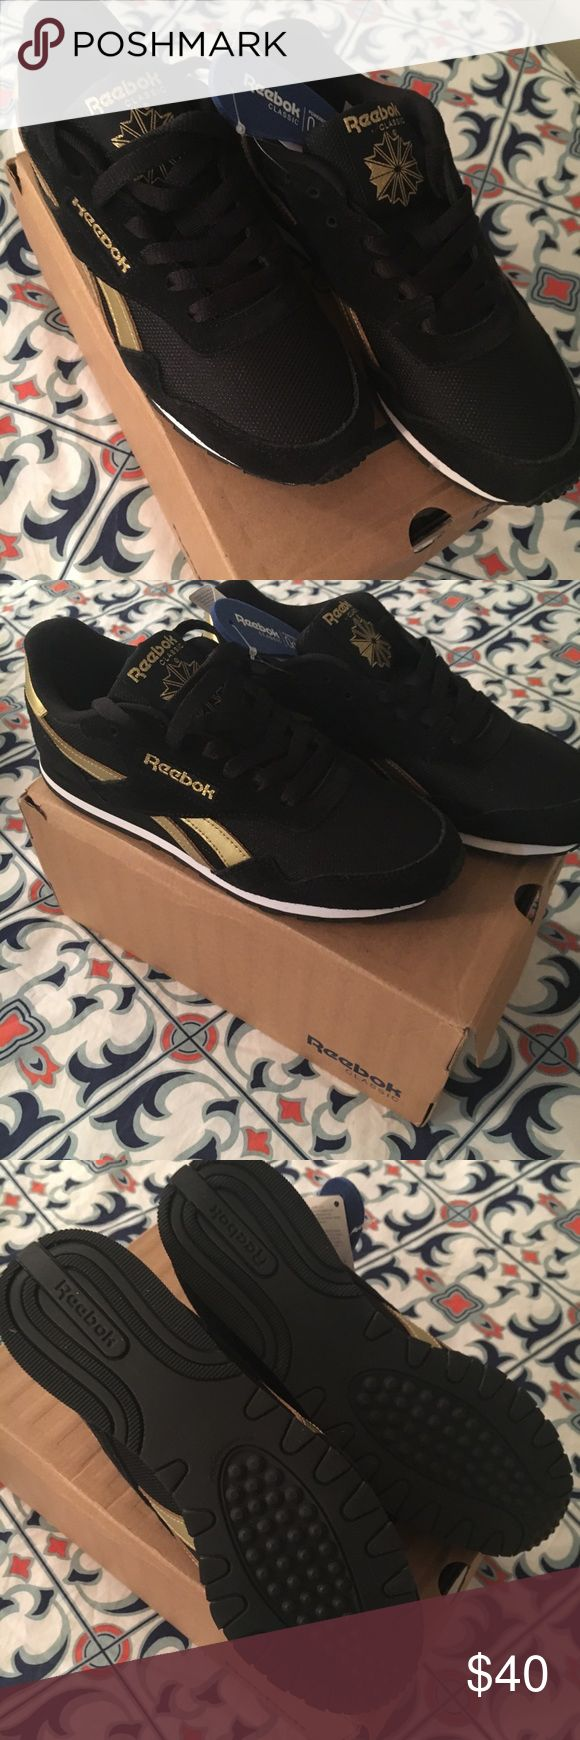 Reebok Classic Royal Ultra SL - Black and Gold Reebok Classic Royal Ultra SL - Black and Gold. Size 7. Brand new. Reebok Shoes Athletic Shoes